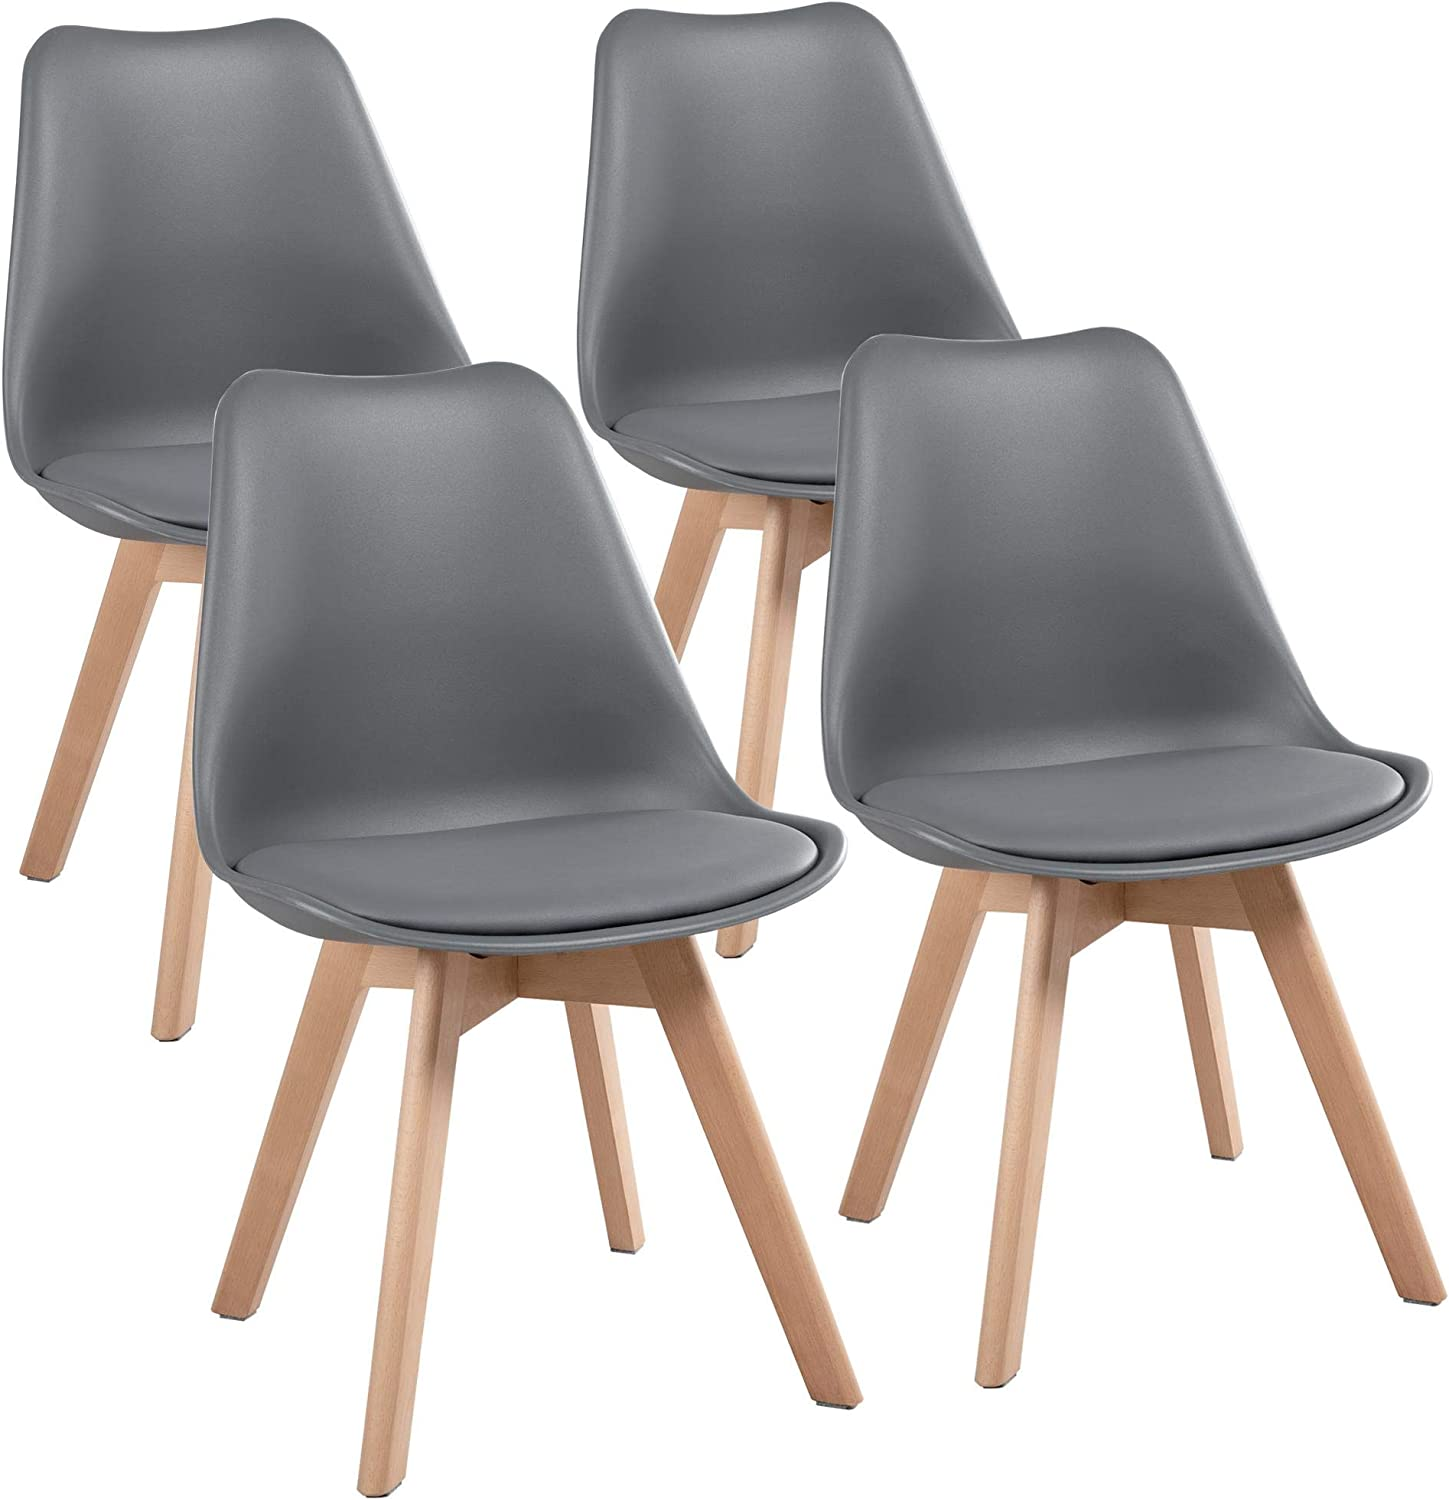 YAHEETECH Dining Chairs DSW Chair Tulip Chair Shell PU Side Chair with Beech Wood Legs Modern Mid Century Eiffel Inspired Chair Upholstered Dining Room Living Room Bedroom Kitchen Dark Gray,4Pcs